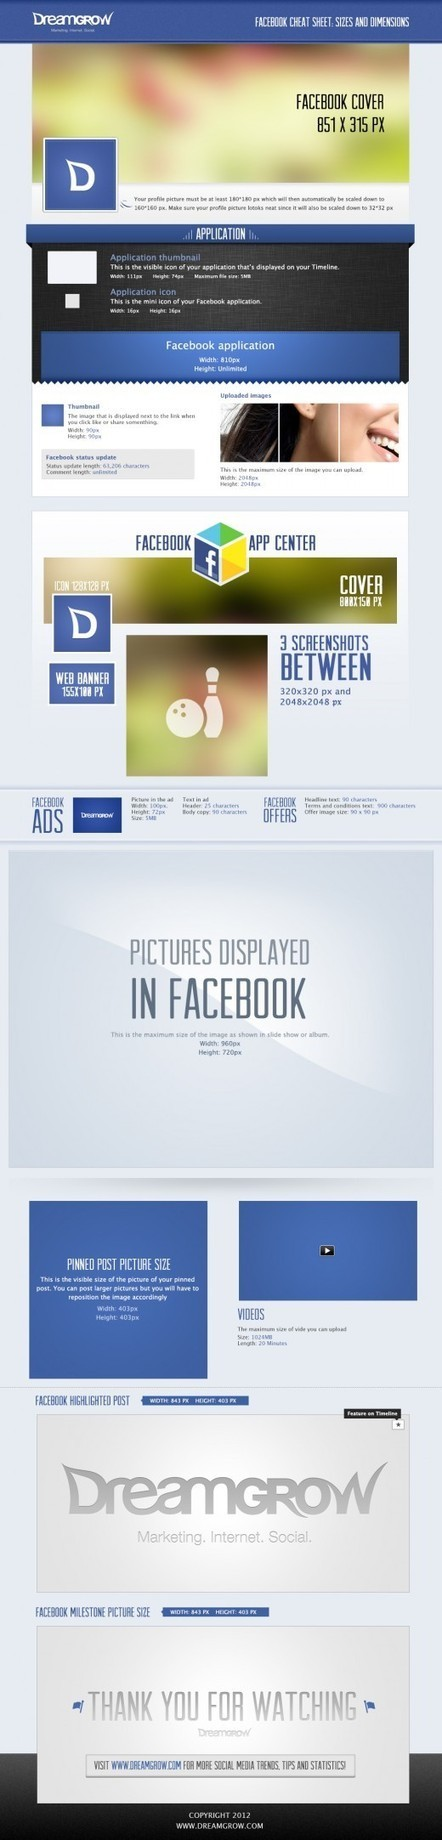 Facebook Cheat Sheet: Sizes and Dimensions | Social Media Marketing - SMO | Scoop.it